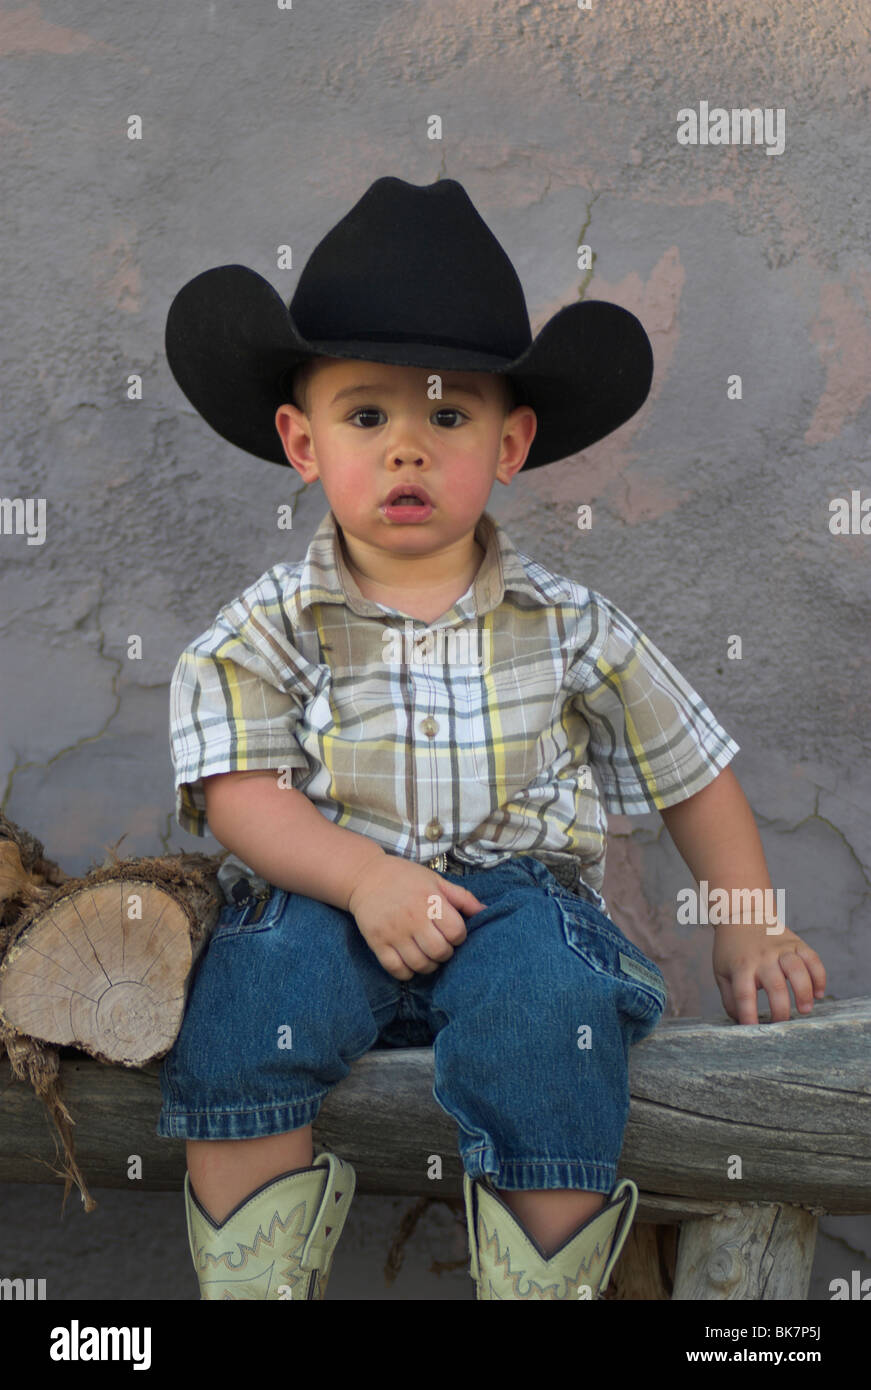 30c9ebd26 A cute 2-4 year old mixed race boy wearing a cowboy hat and sitting ...